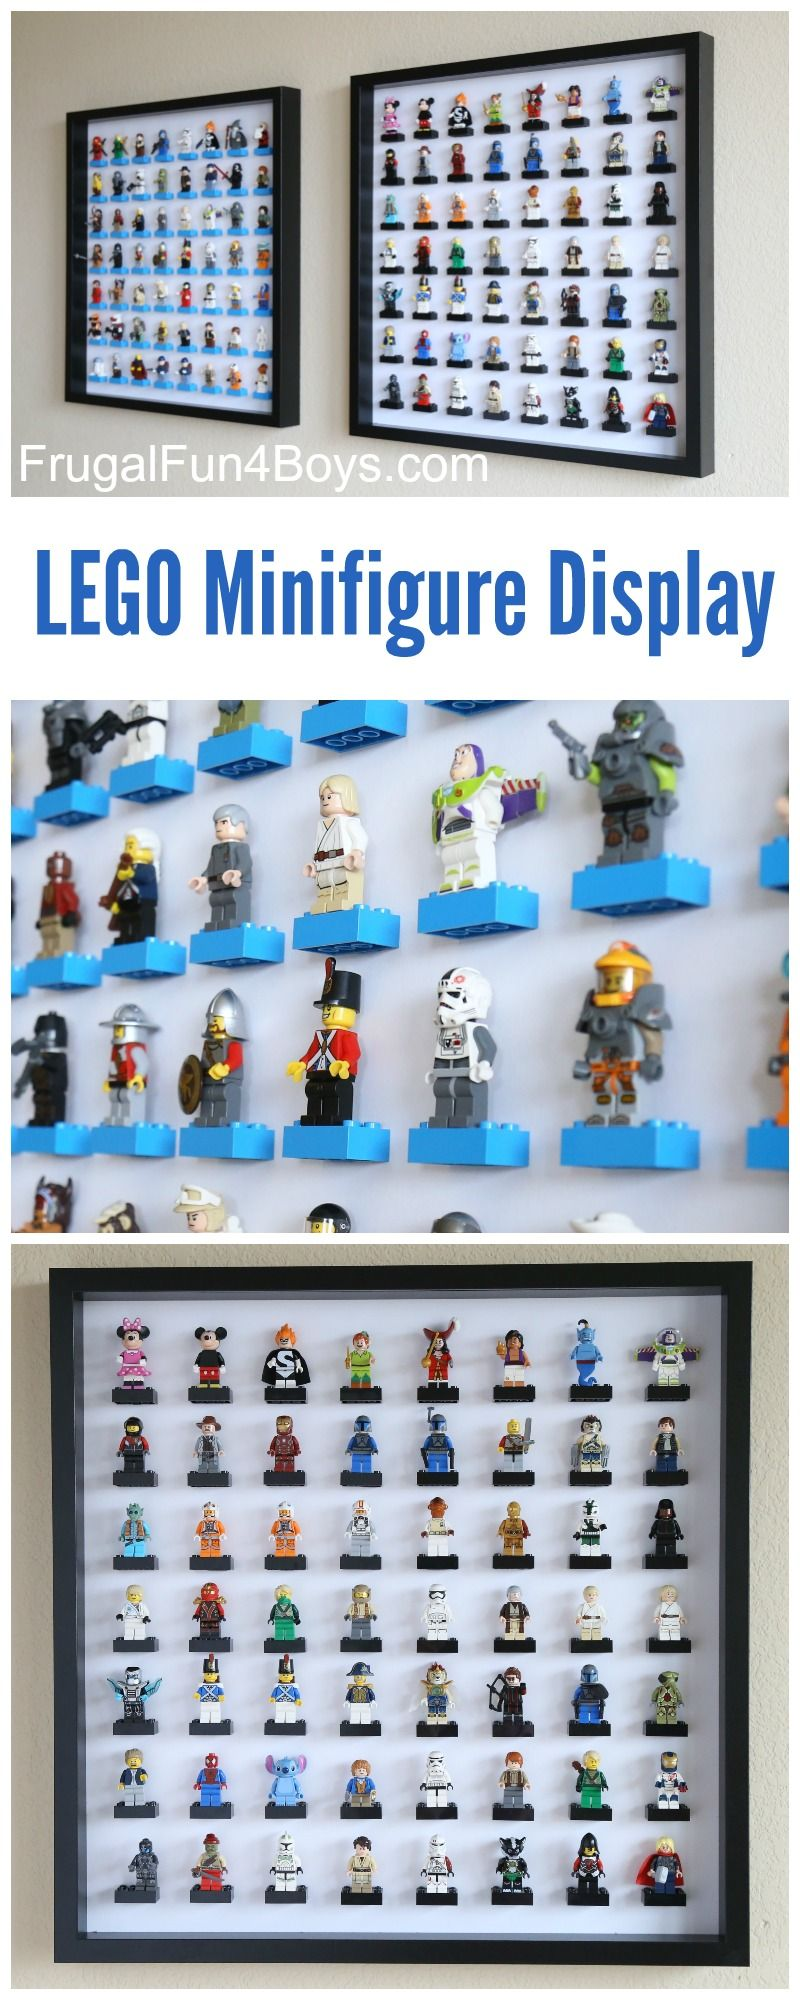 IKEA Frame LEGO Minifigure Display and Storage - Each frame holds 56 LEGO guys. This is so cool! Make one or a few for a huge collection.